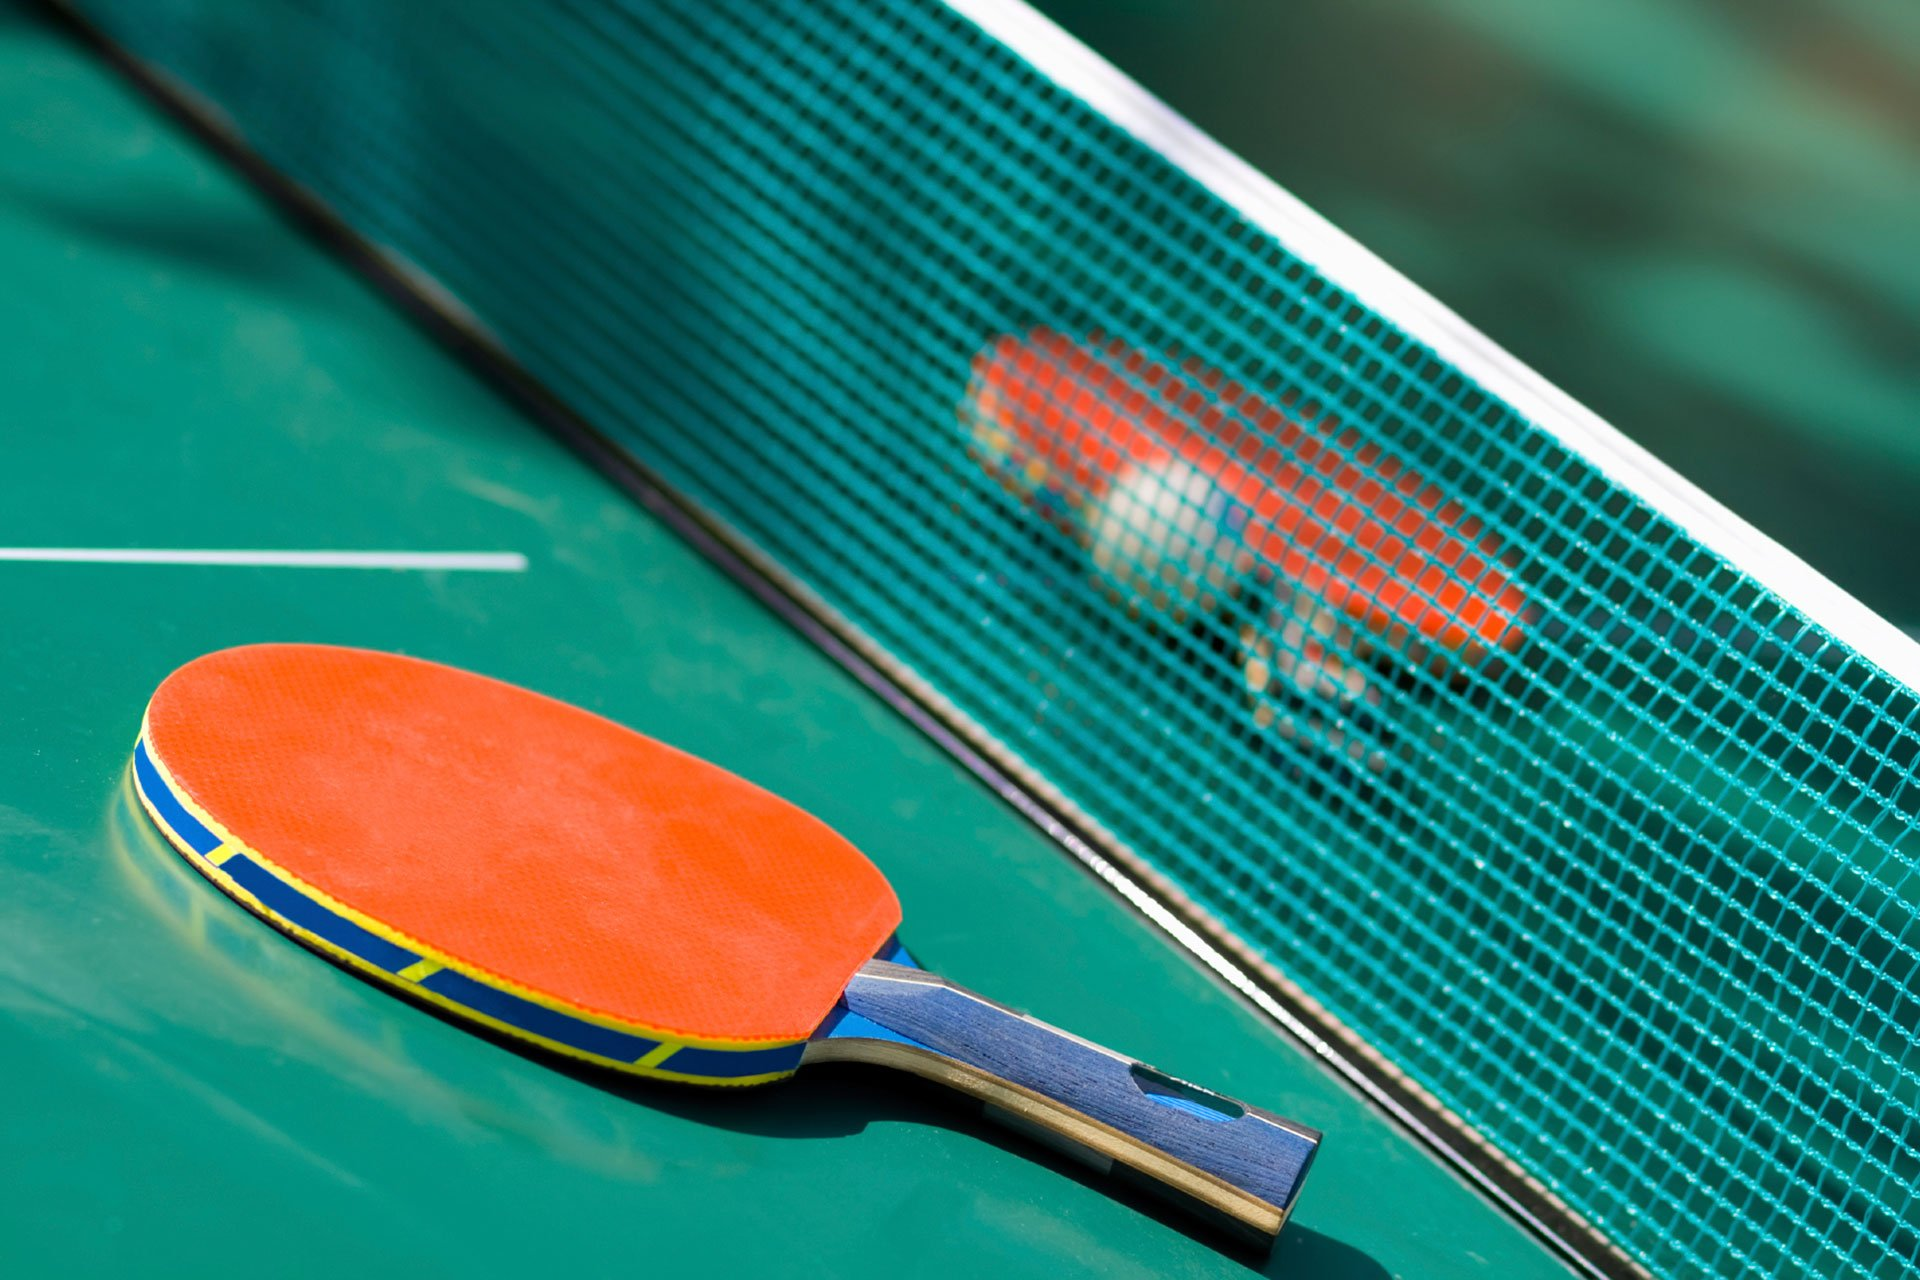 Glendale Sports Center - Table Tennis